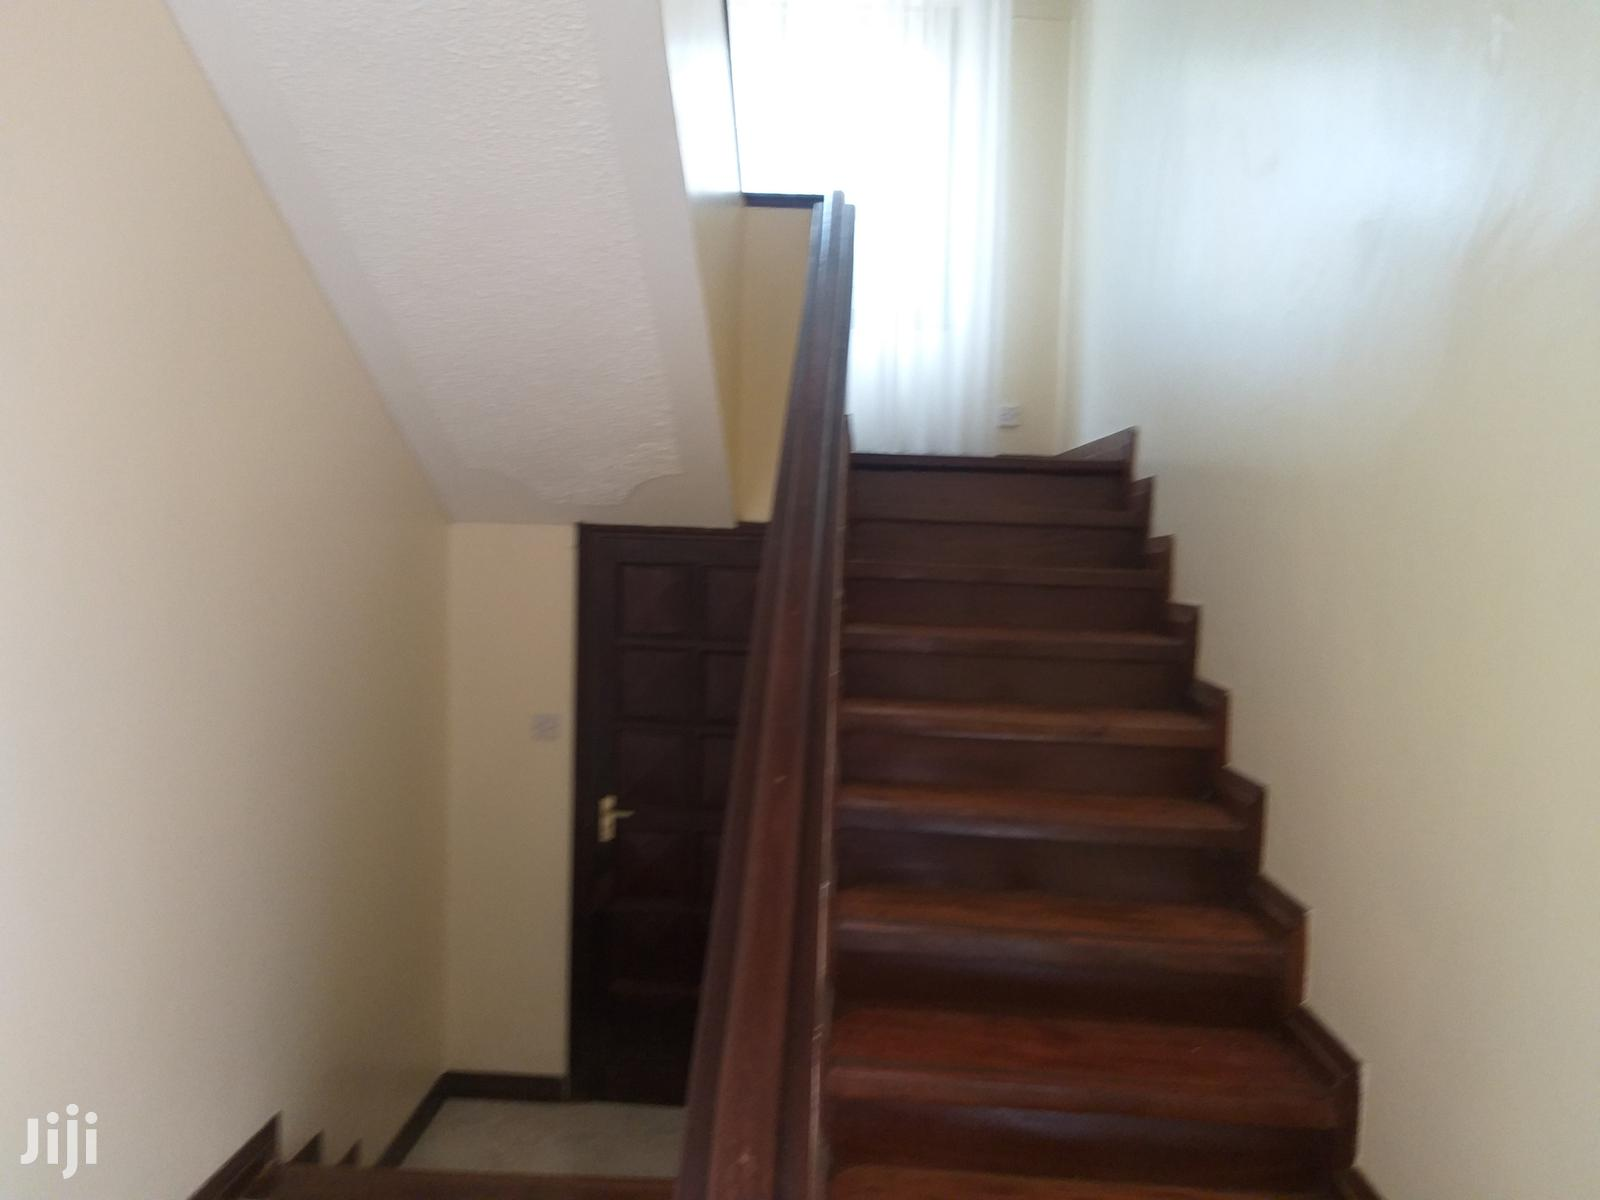 Nyali 3 Bedroom Maisonette For Sale With Swimming Pool | Houses & Apartments For Sale for sale in Mkomani, Mombasa, Kenya